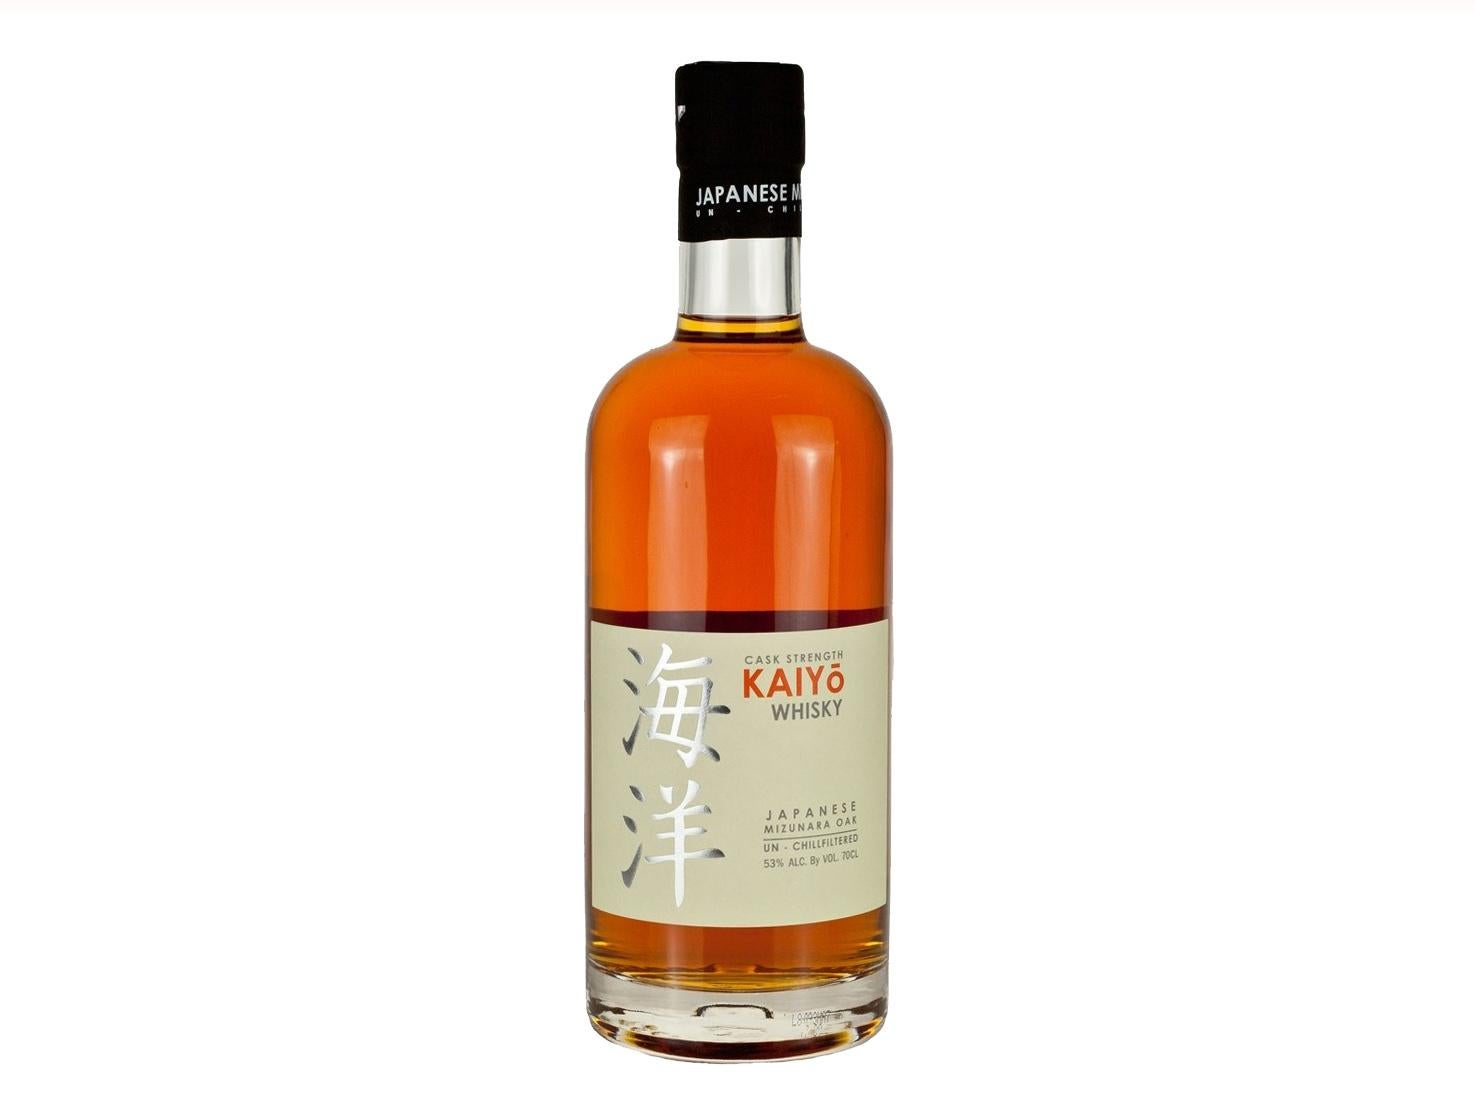 9 Best Japanese Whiskies The Independent